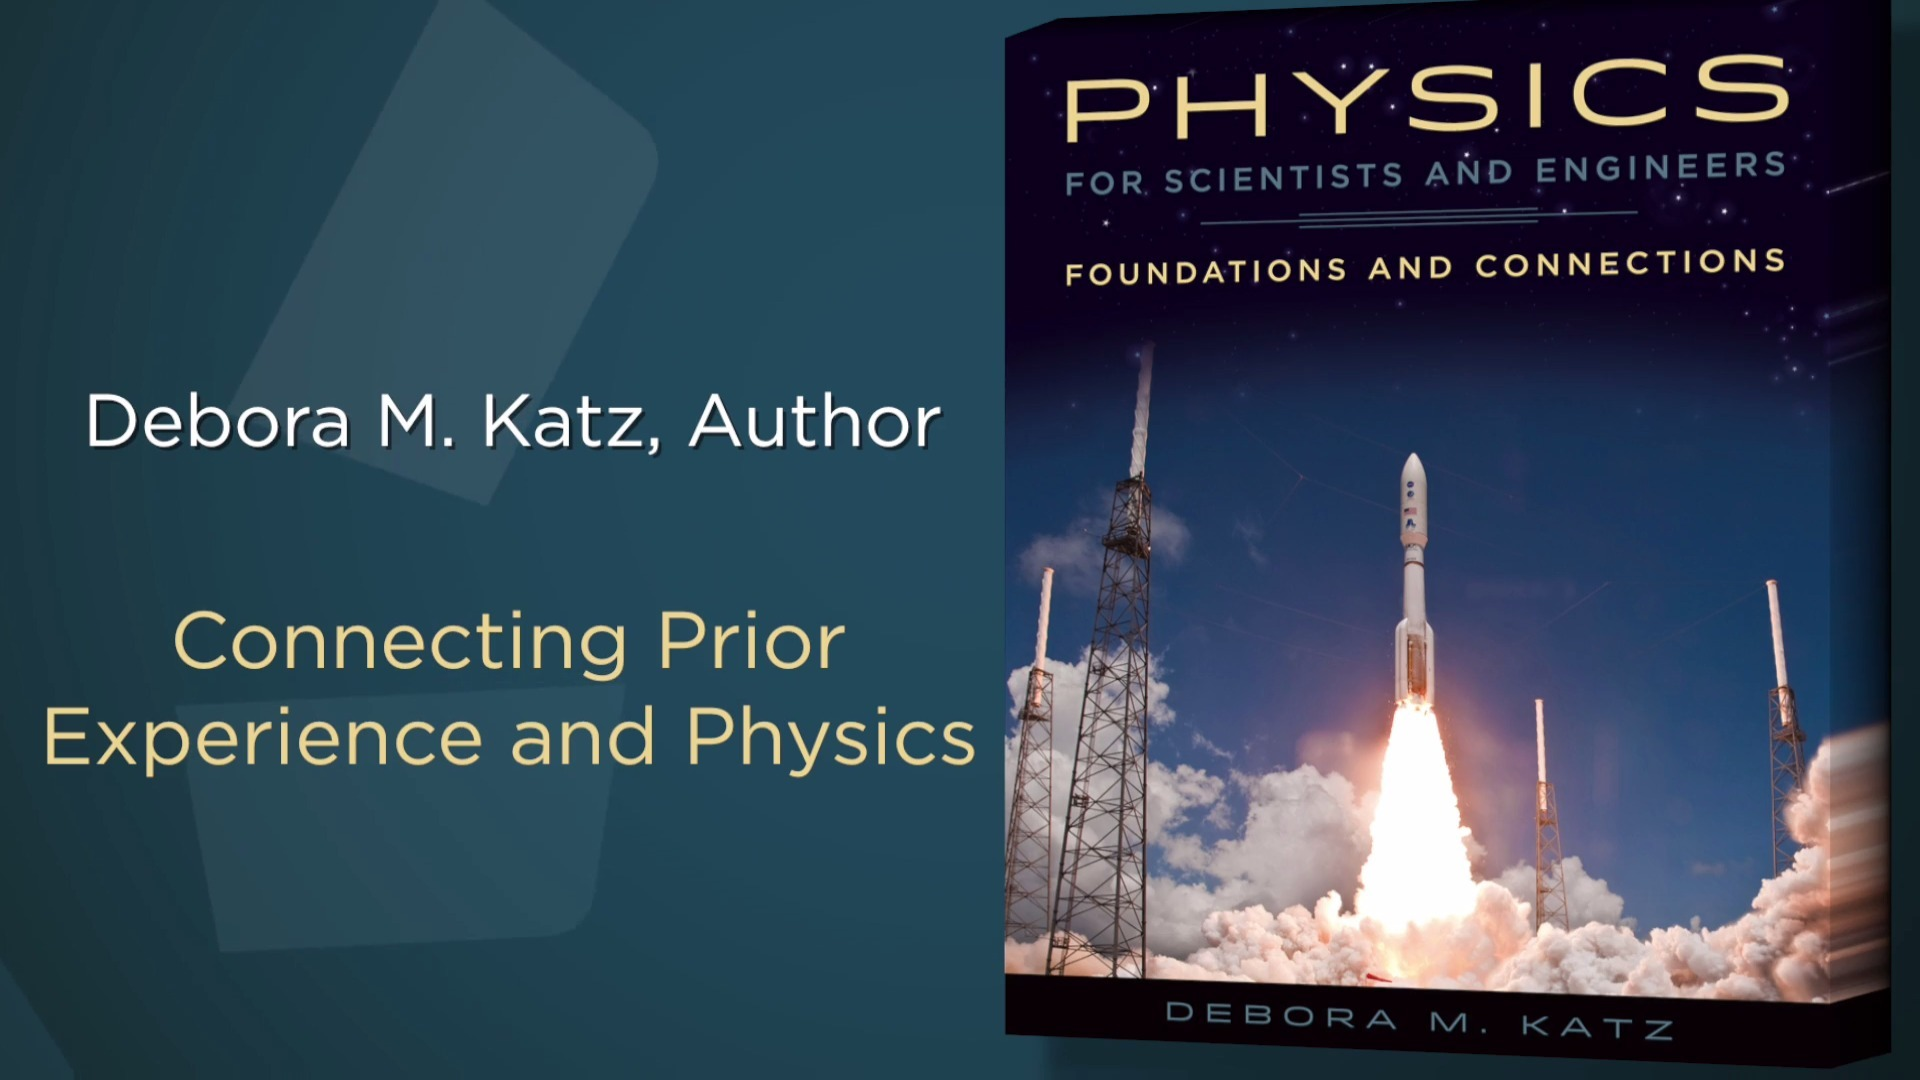 Debora Katz's Physics for Scientists and Engineers: Connecting Prior Experience and Physics